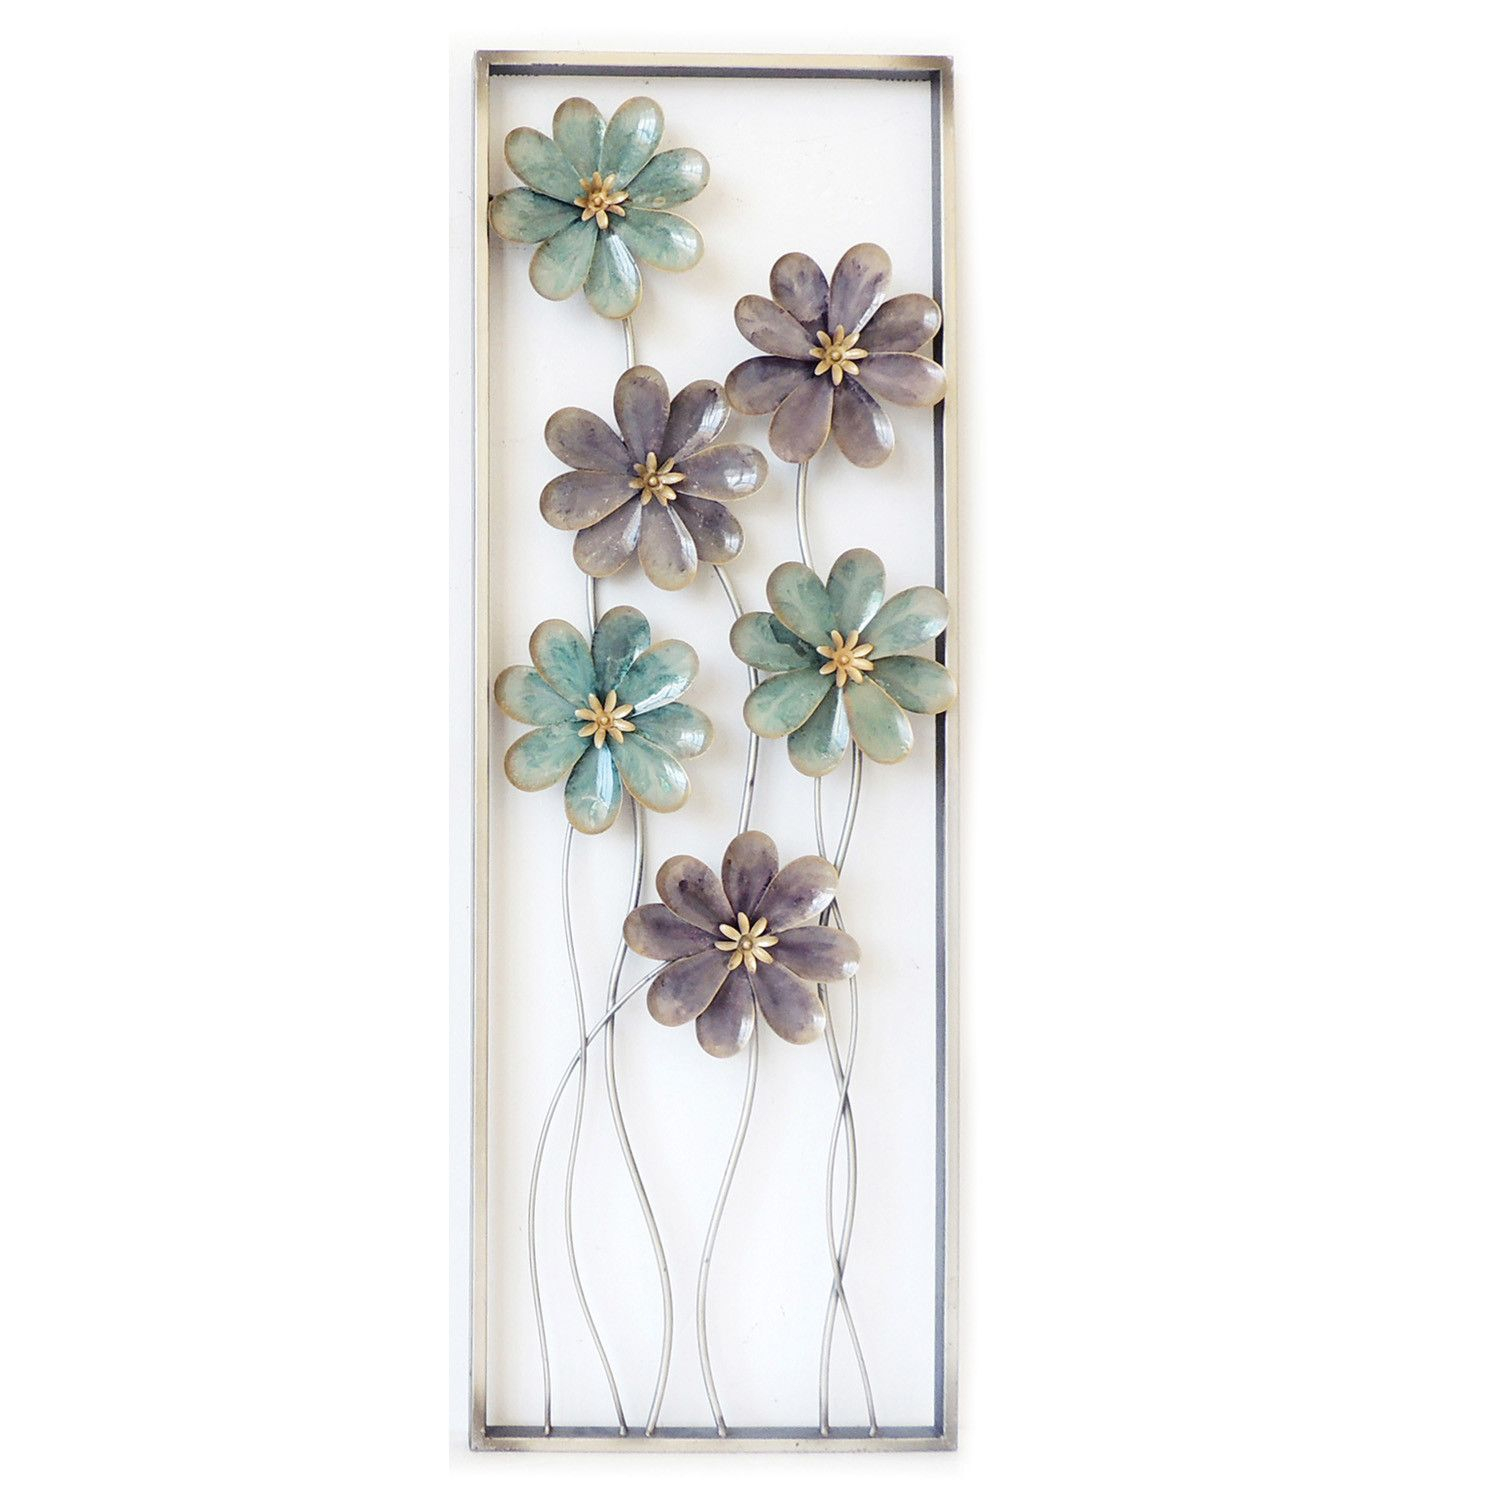 Charlton Home 6 Flowers On Stem Wall Decor   Ideas For The Pertaining To Wall Decor By Charlton Home (View 18 of 30)